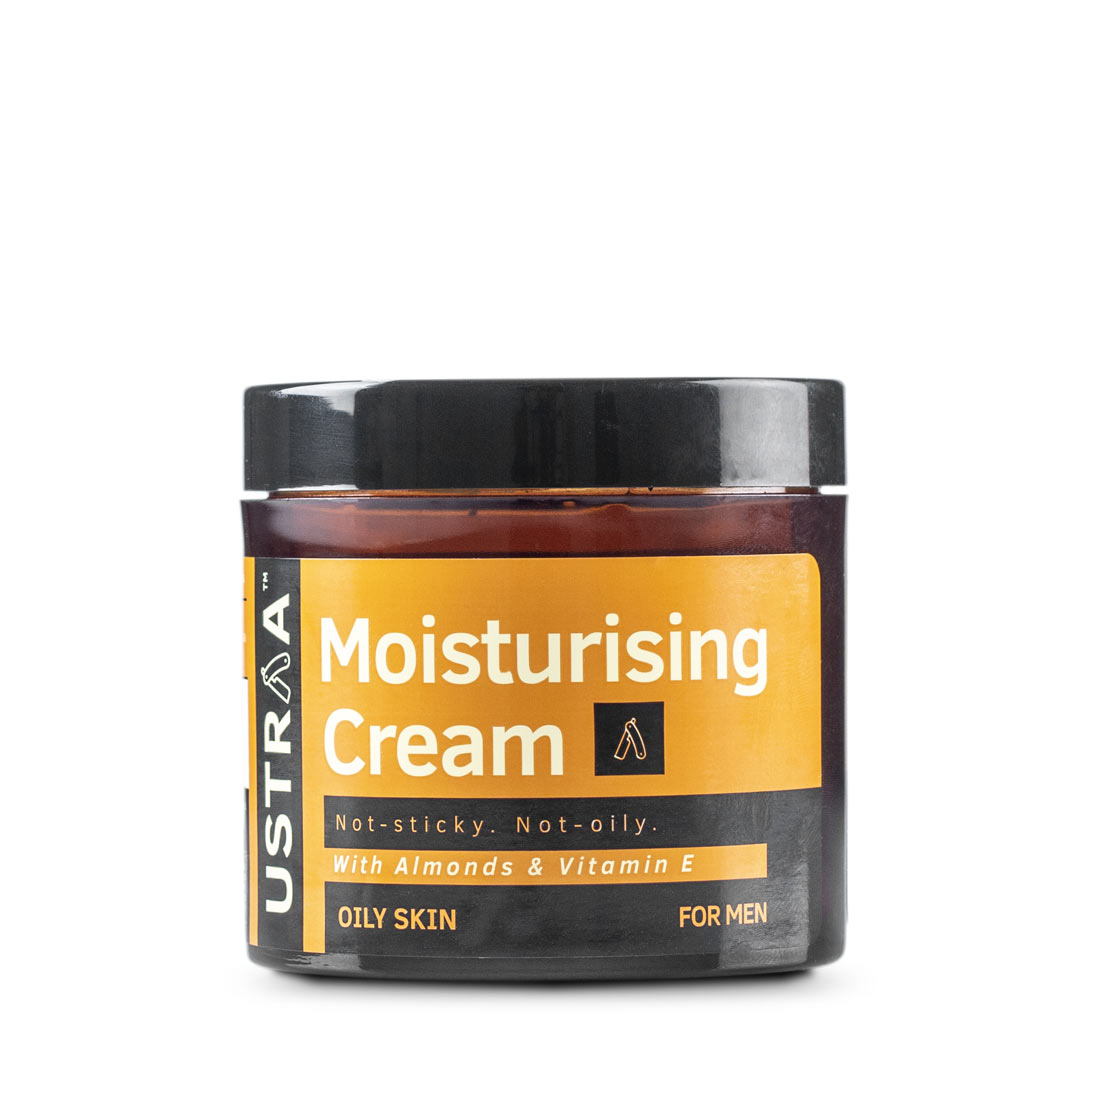 Moisturising Cream for Oily Skin - 100g